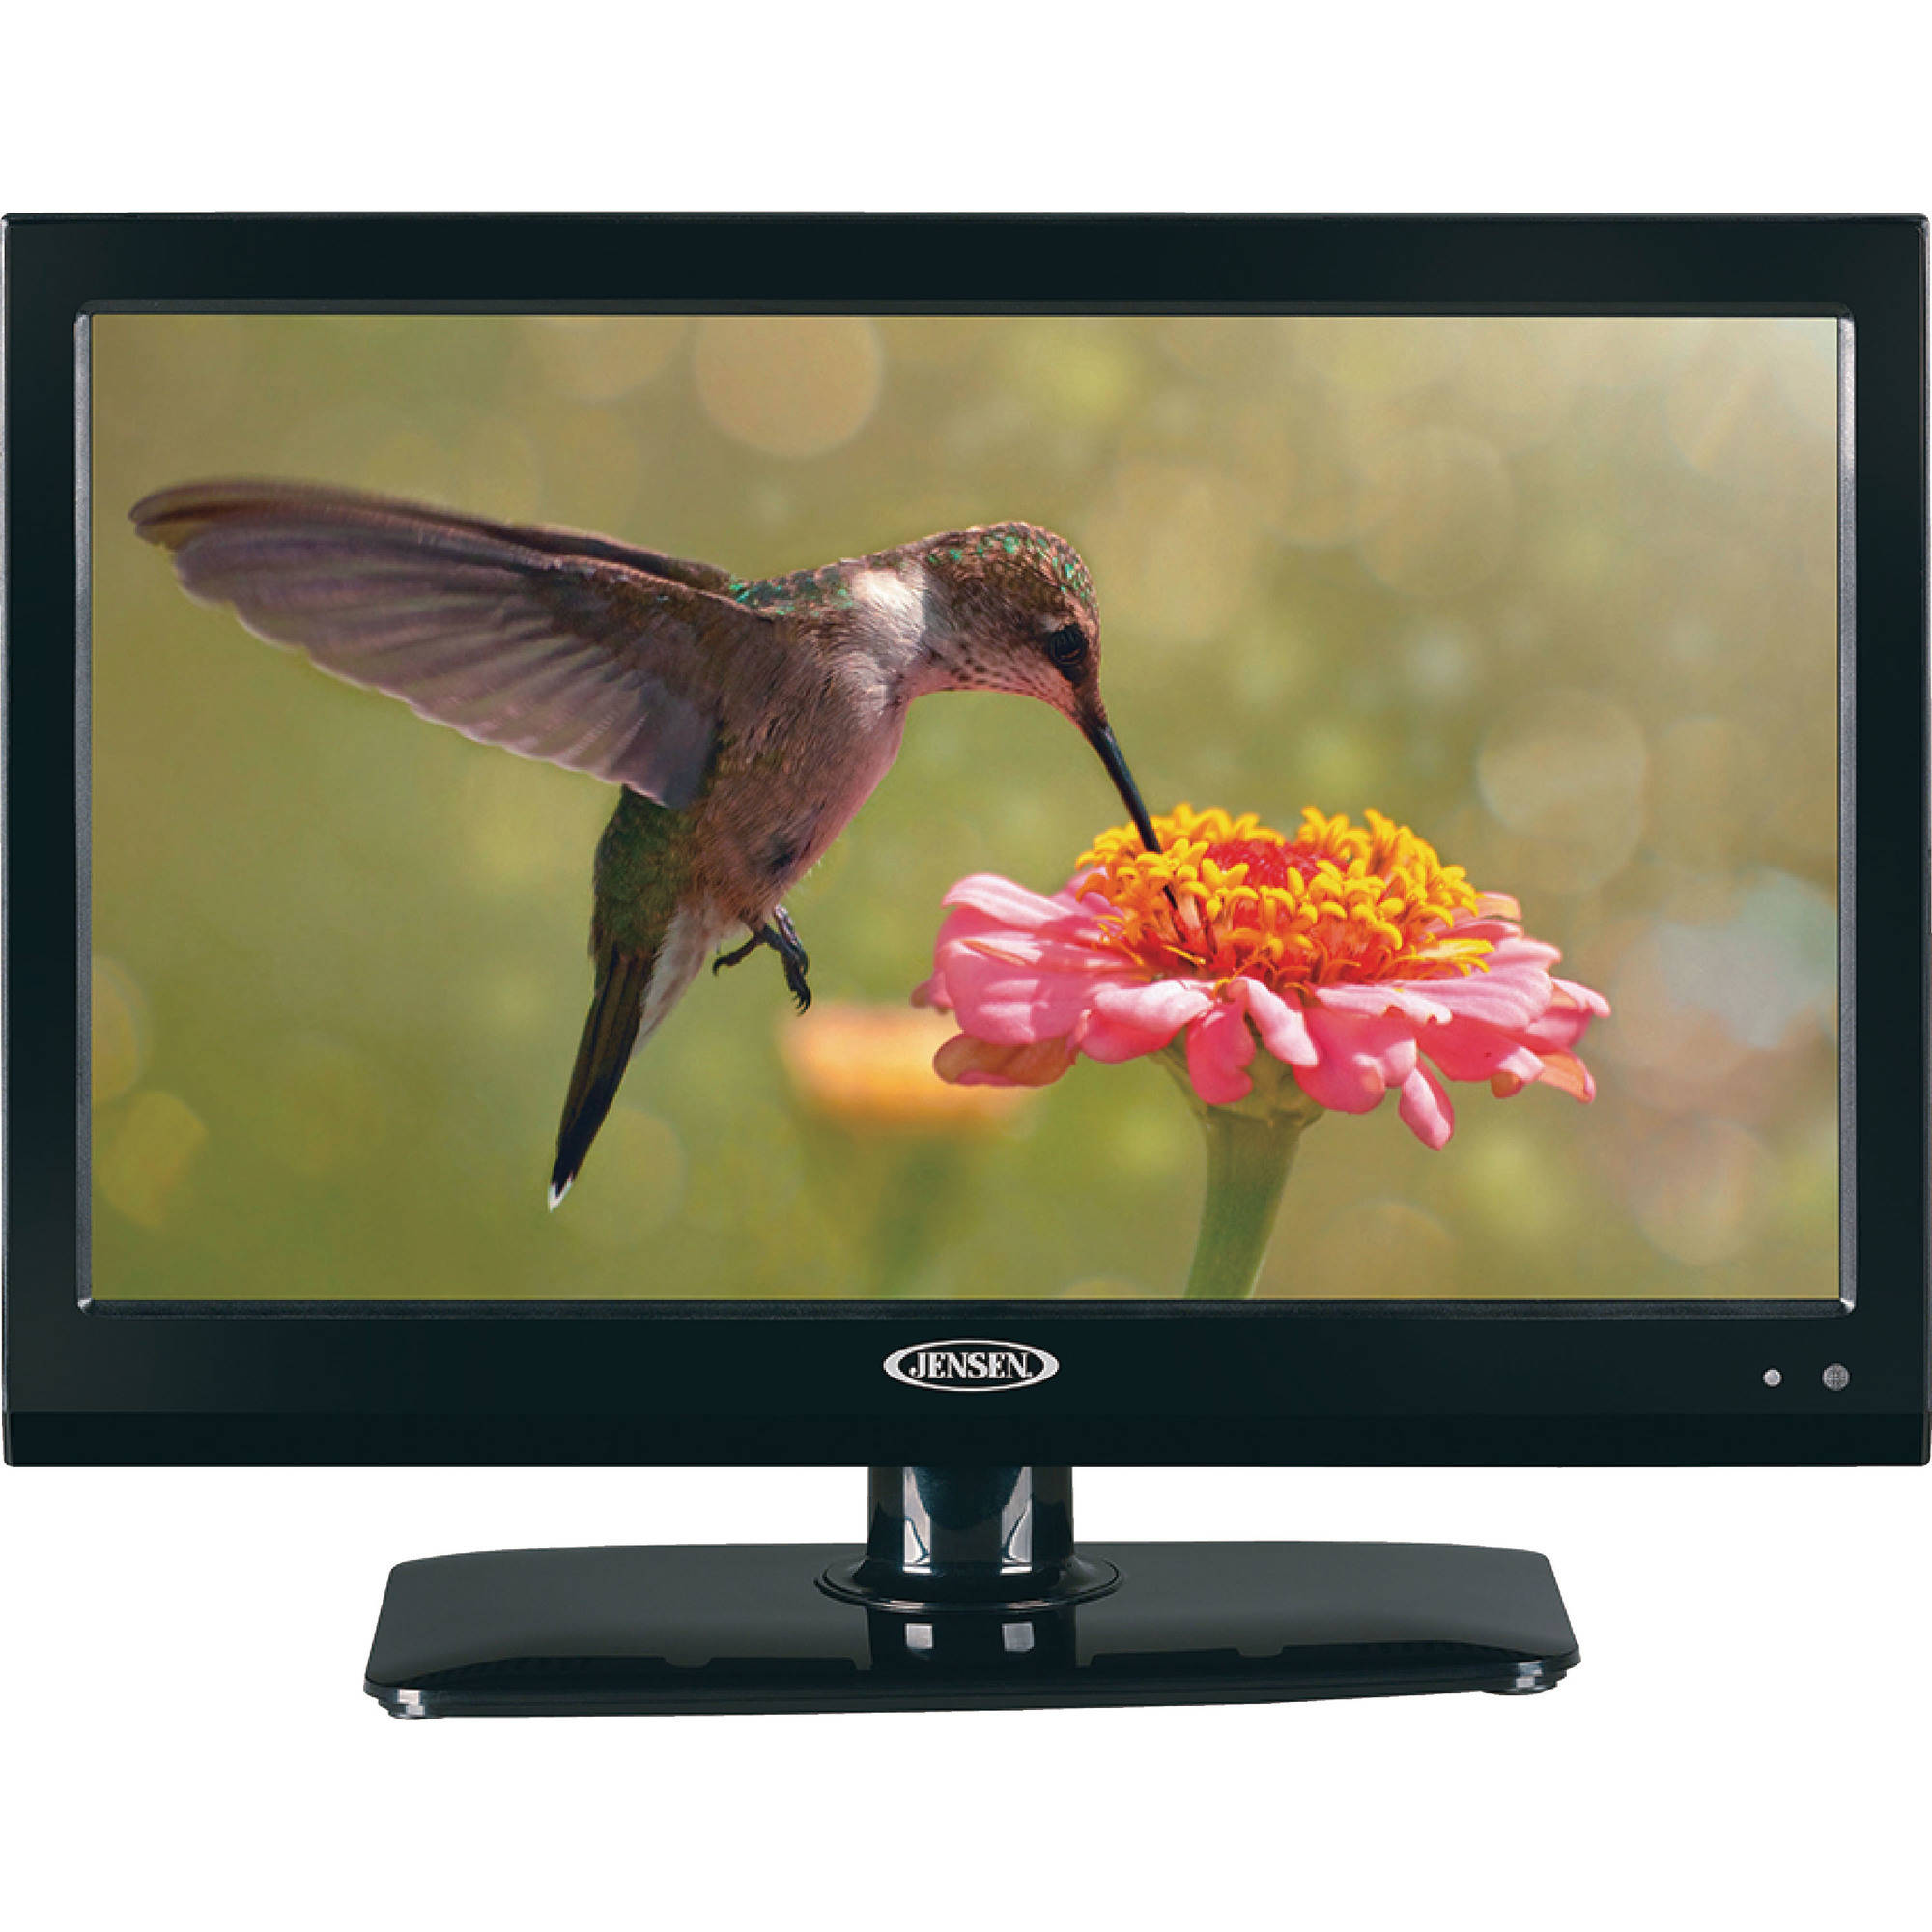 "Jensen JE1914DVDC 12VDC 110VAC 19"" LCD RV   Marine Television TV with DVD Player, Remote Control and Stand by Jensen"